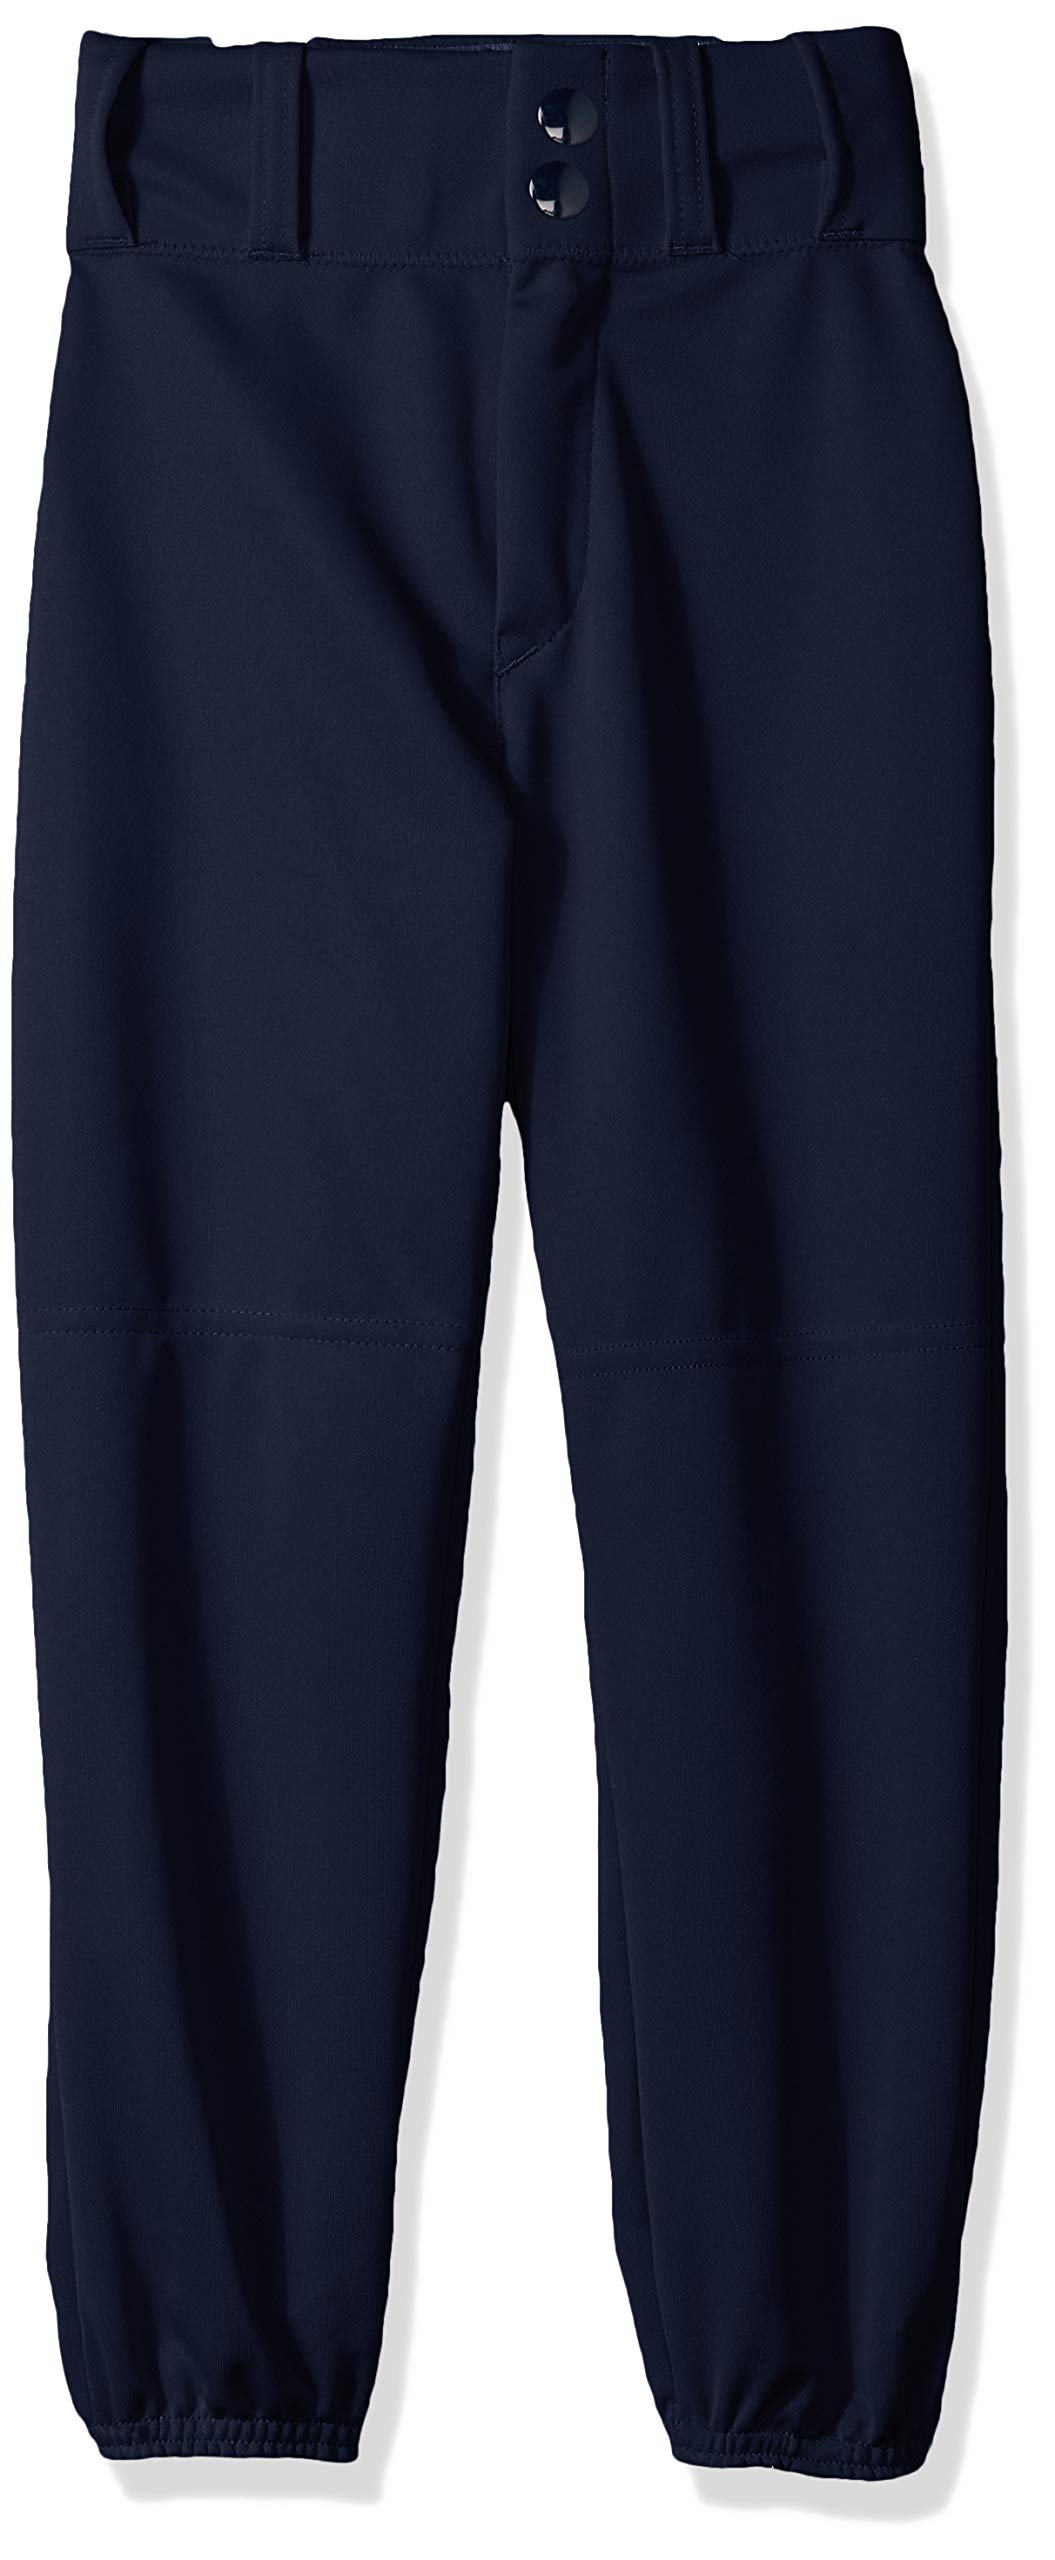 Alleson Ahtletic Boys Youth Elastic Bottom Baseball Pants, Navy, X-Large by Alleson Ahtletic